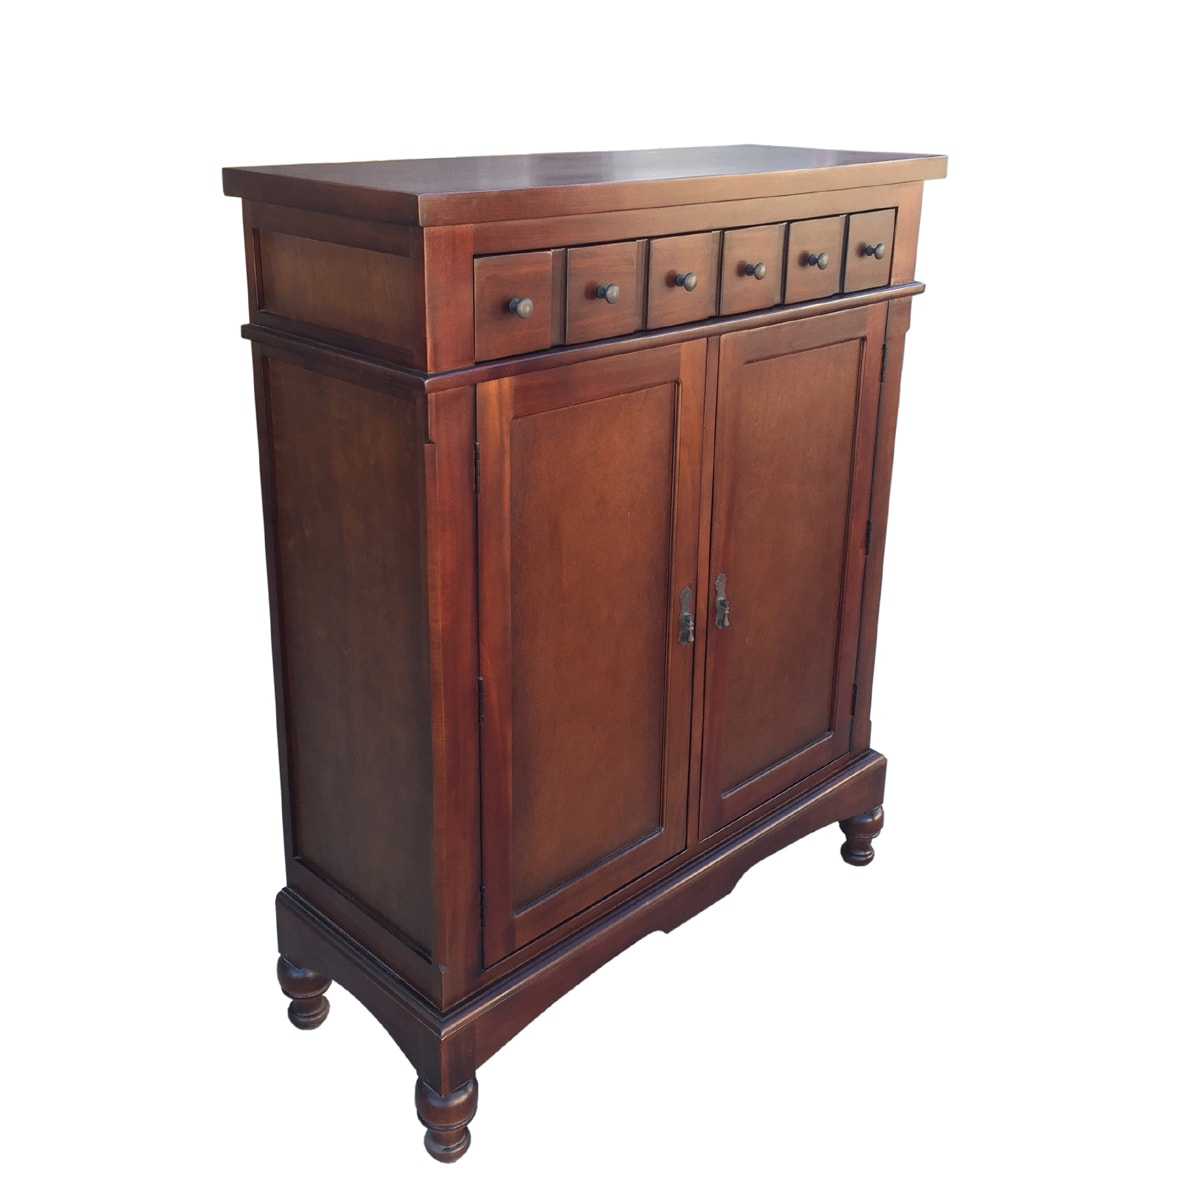 Merveilleux D Art Colonial Apothecary Storage Cabinet   Free Shipping Today    Overstock.com   18310382